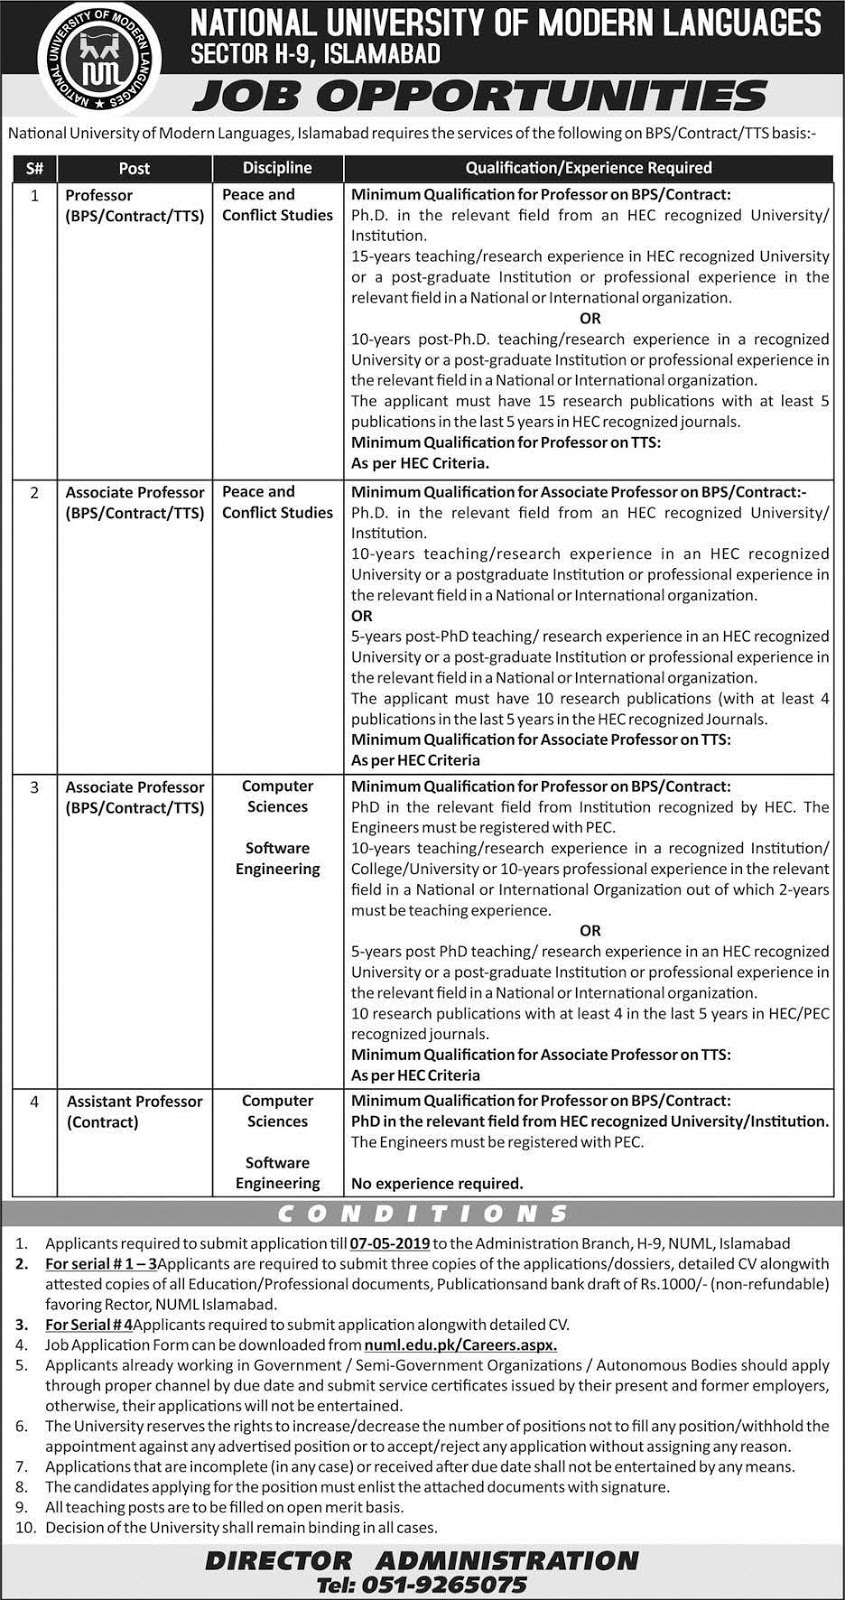 Today Jobs in National University of Modern Languages Islamabad 23 April 2019